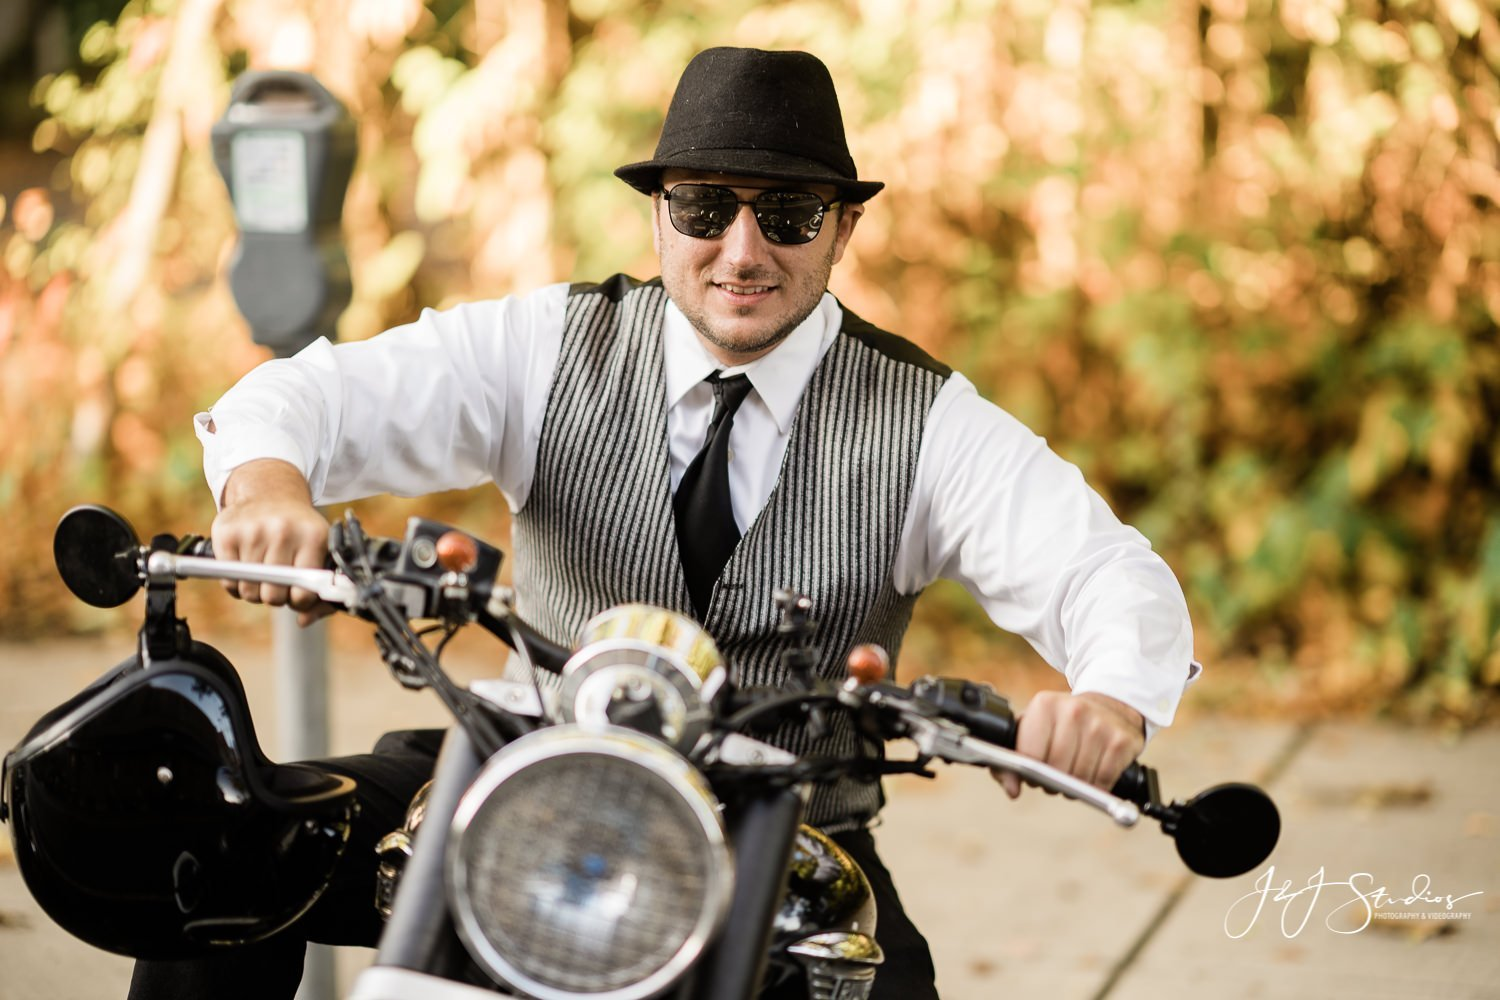 man in fedora and vest on motorcycle